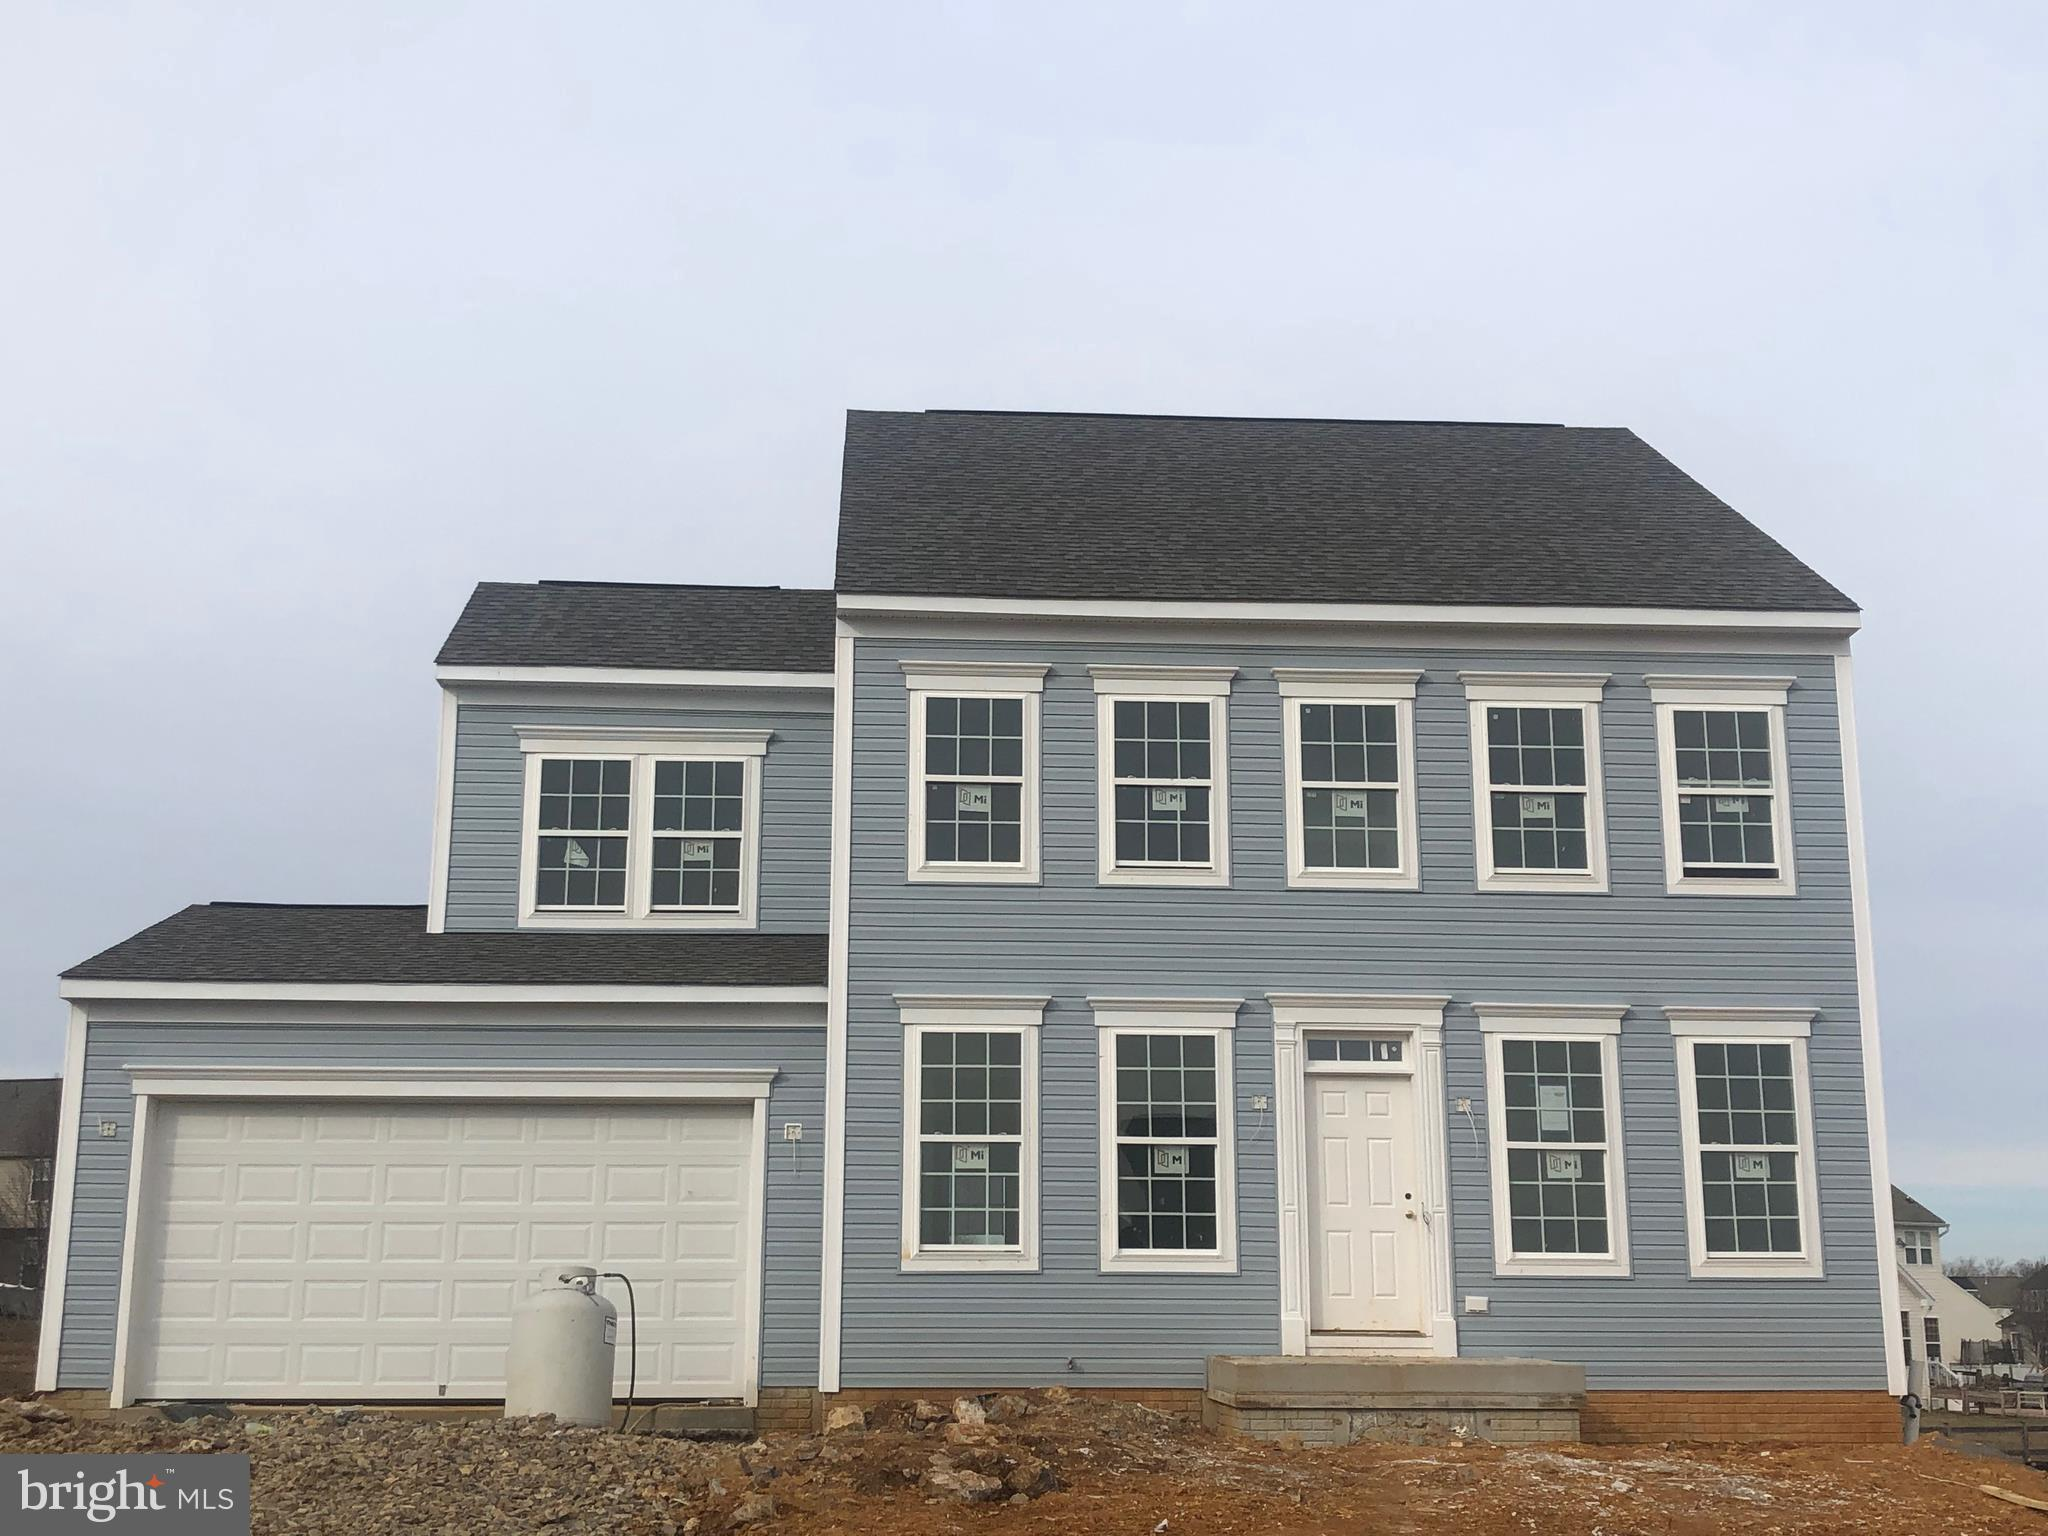 April Delivery!  Gorgeous 4 bedroom, 2 1/2 bath home w/4ft. rear ext. on all 3 levels, hardwoods on entire 1st floor, designer kitchen w/maple cabinets, granite, island & stainless appliances.  Family room w/gas fireplace.  Master suite w/dual walk-in closets, upstairs laundry.  Full unfinished walk-up basement w/3 piece rough in to expand later!!